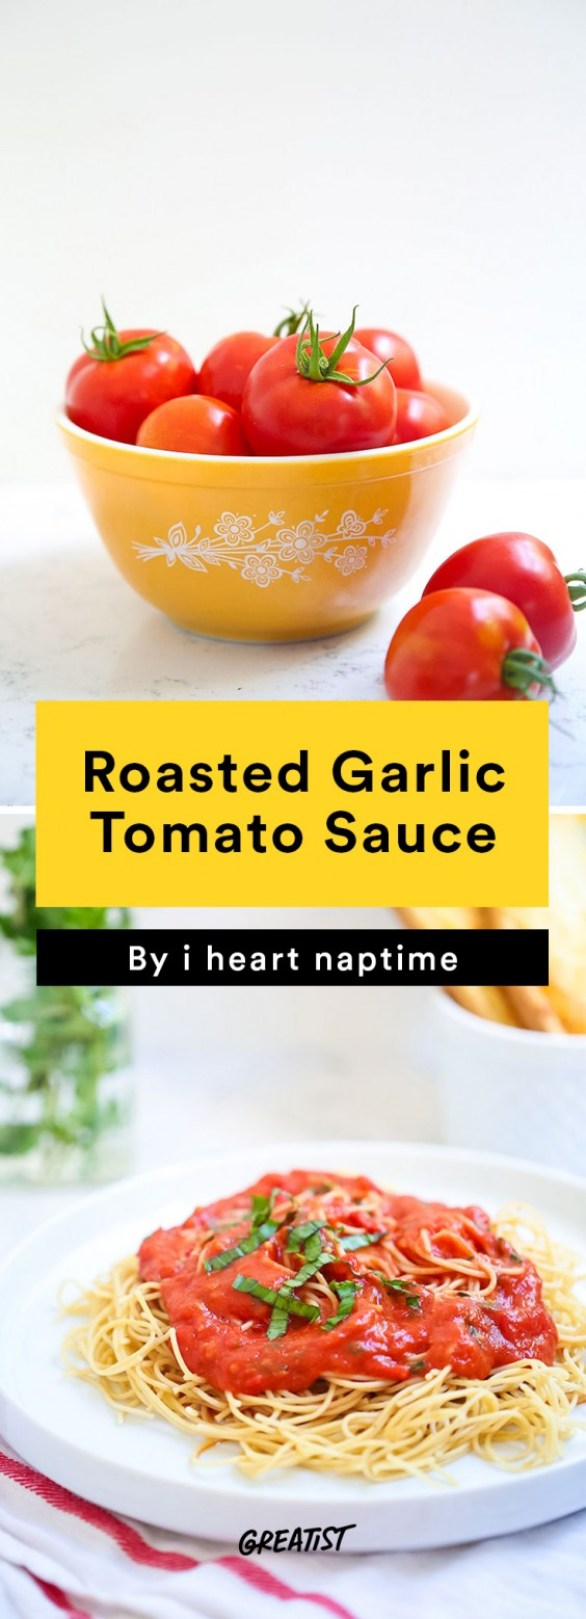 Roasted Garlic Tomato Sauce Recipe